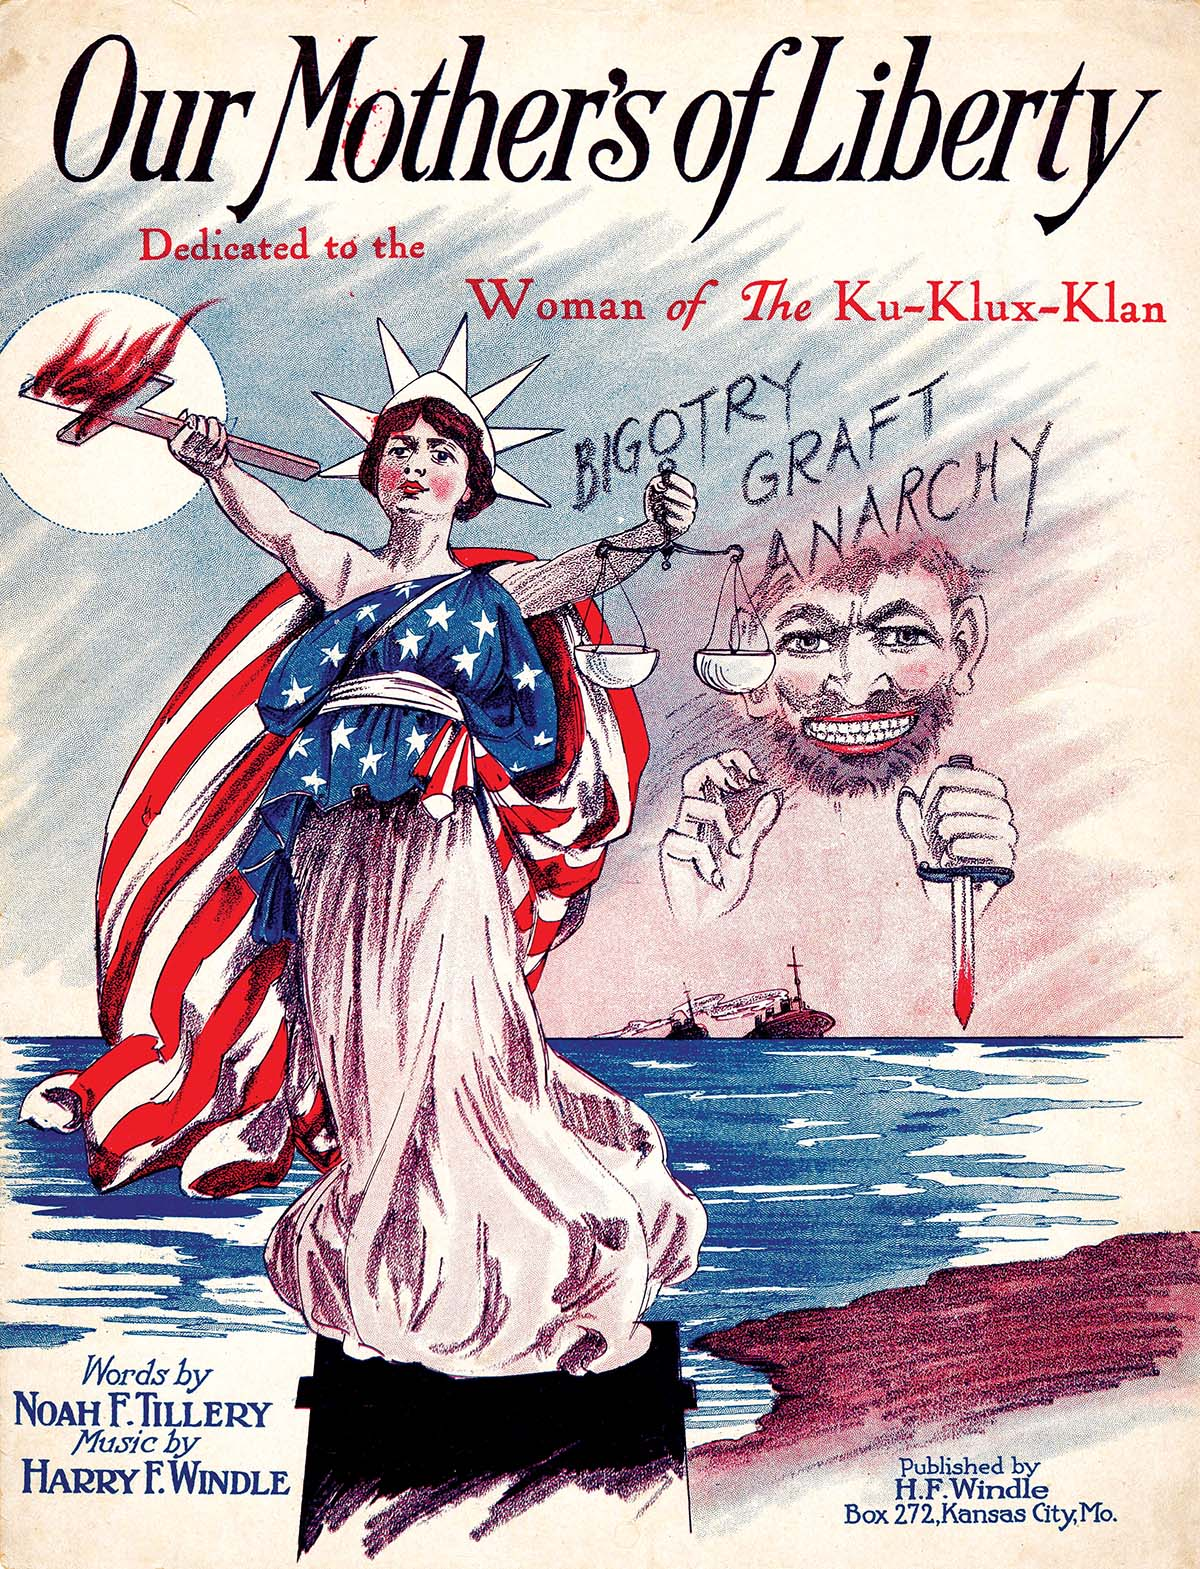 Our Mothers of Liberty, sheet music by Noah Tillery and Harry Windle, dedicated to the women of the Ku Klux Klan, 1924. Alamy.